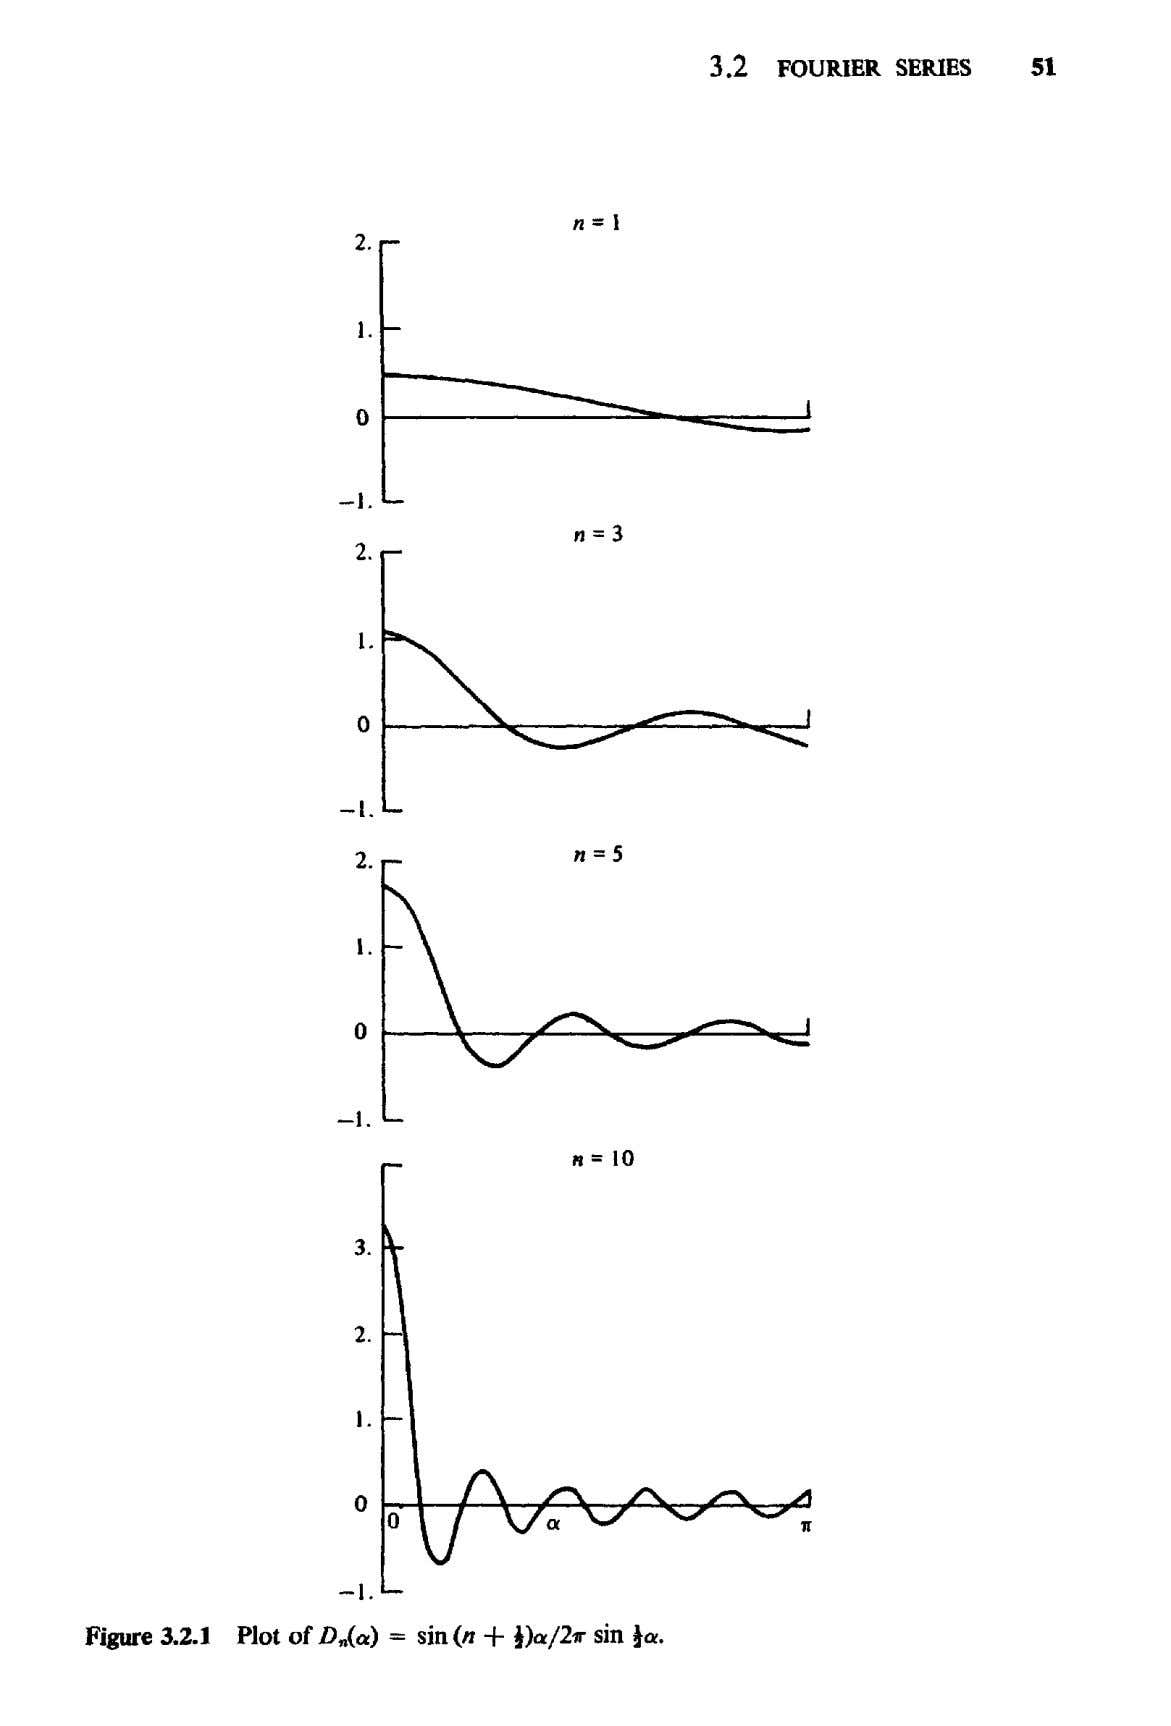 "3.2 FOURIER SERIES 51 Figure 3.2.1 Plot of />""(«) = sin (n + l)a/2ir sin"